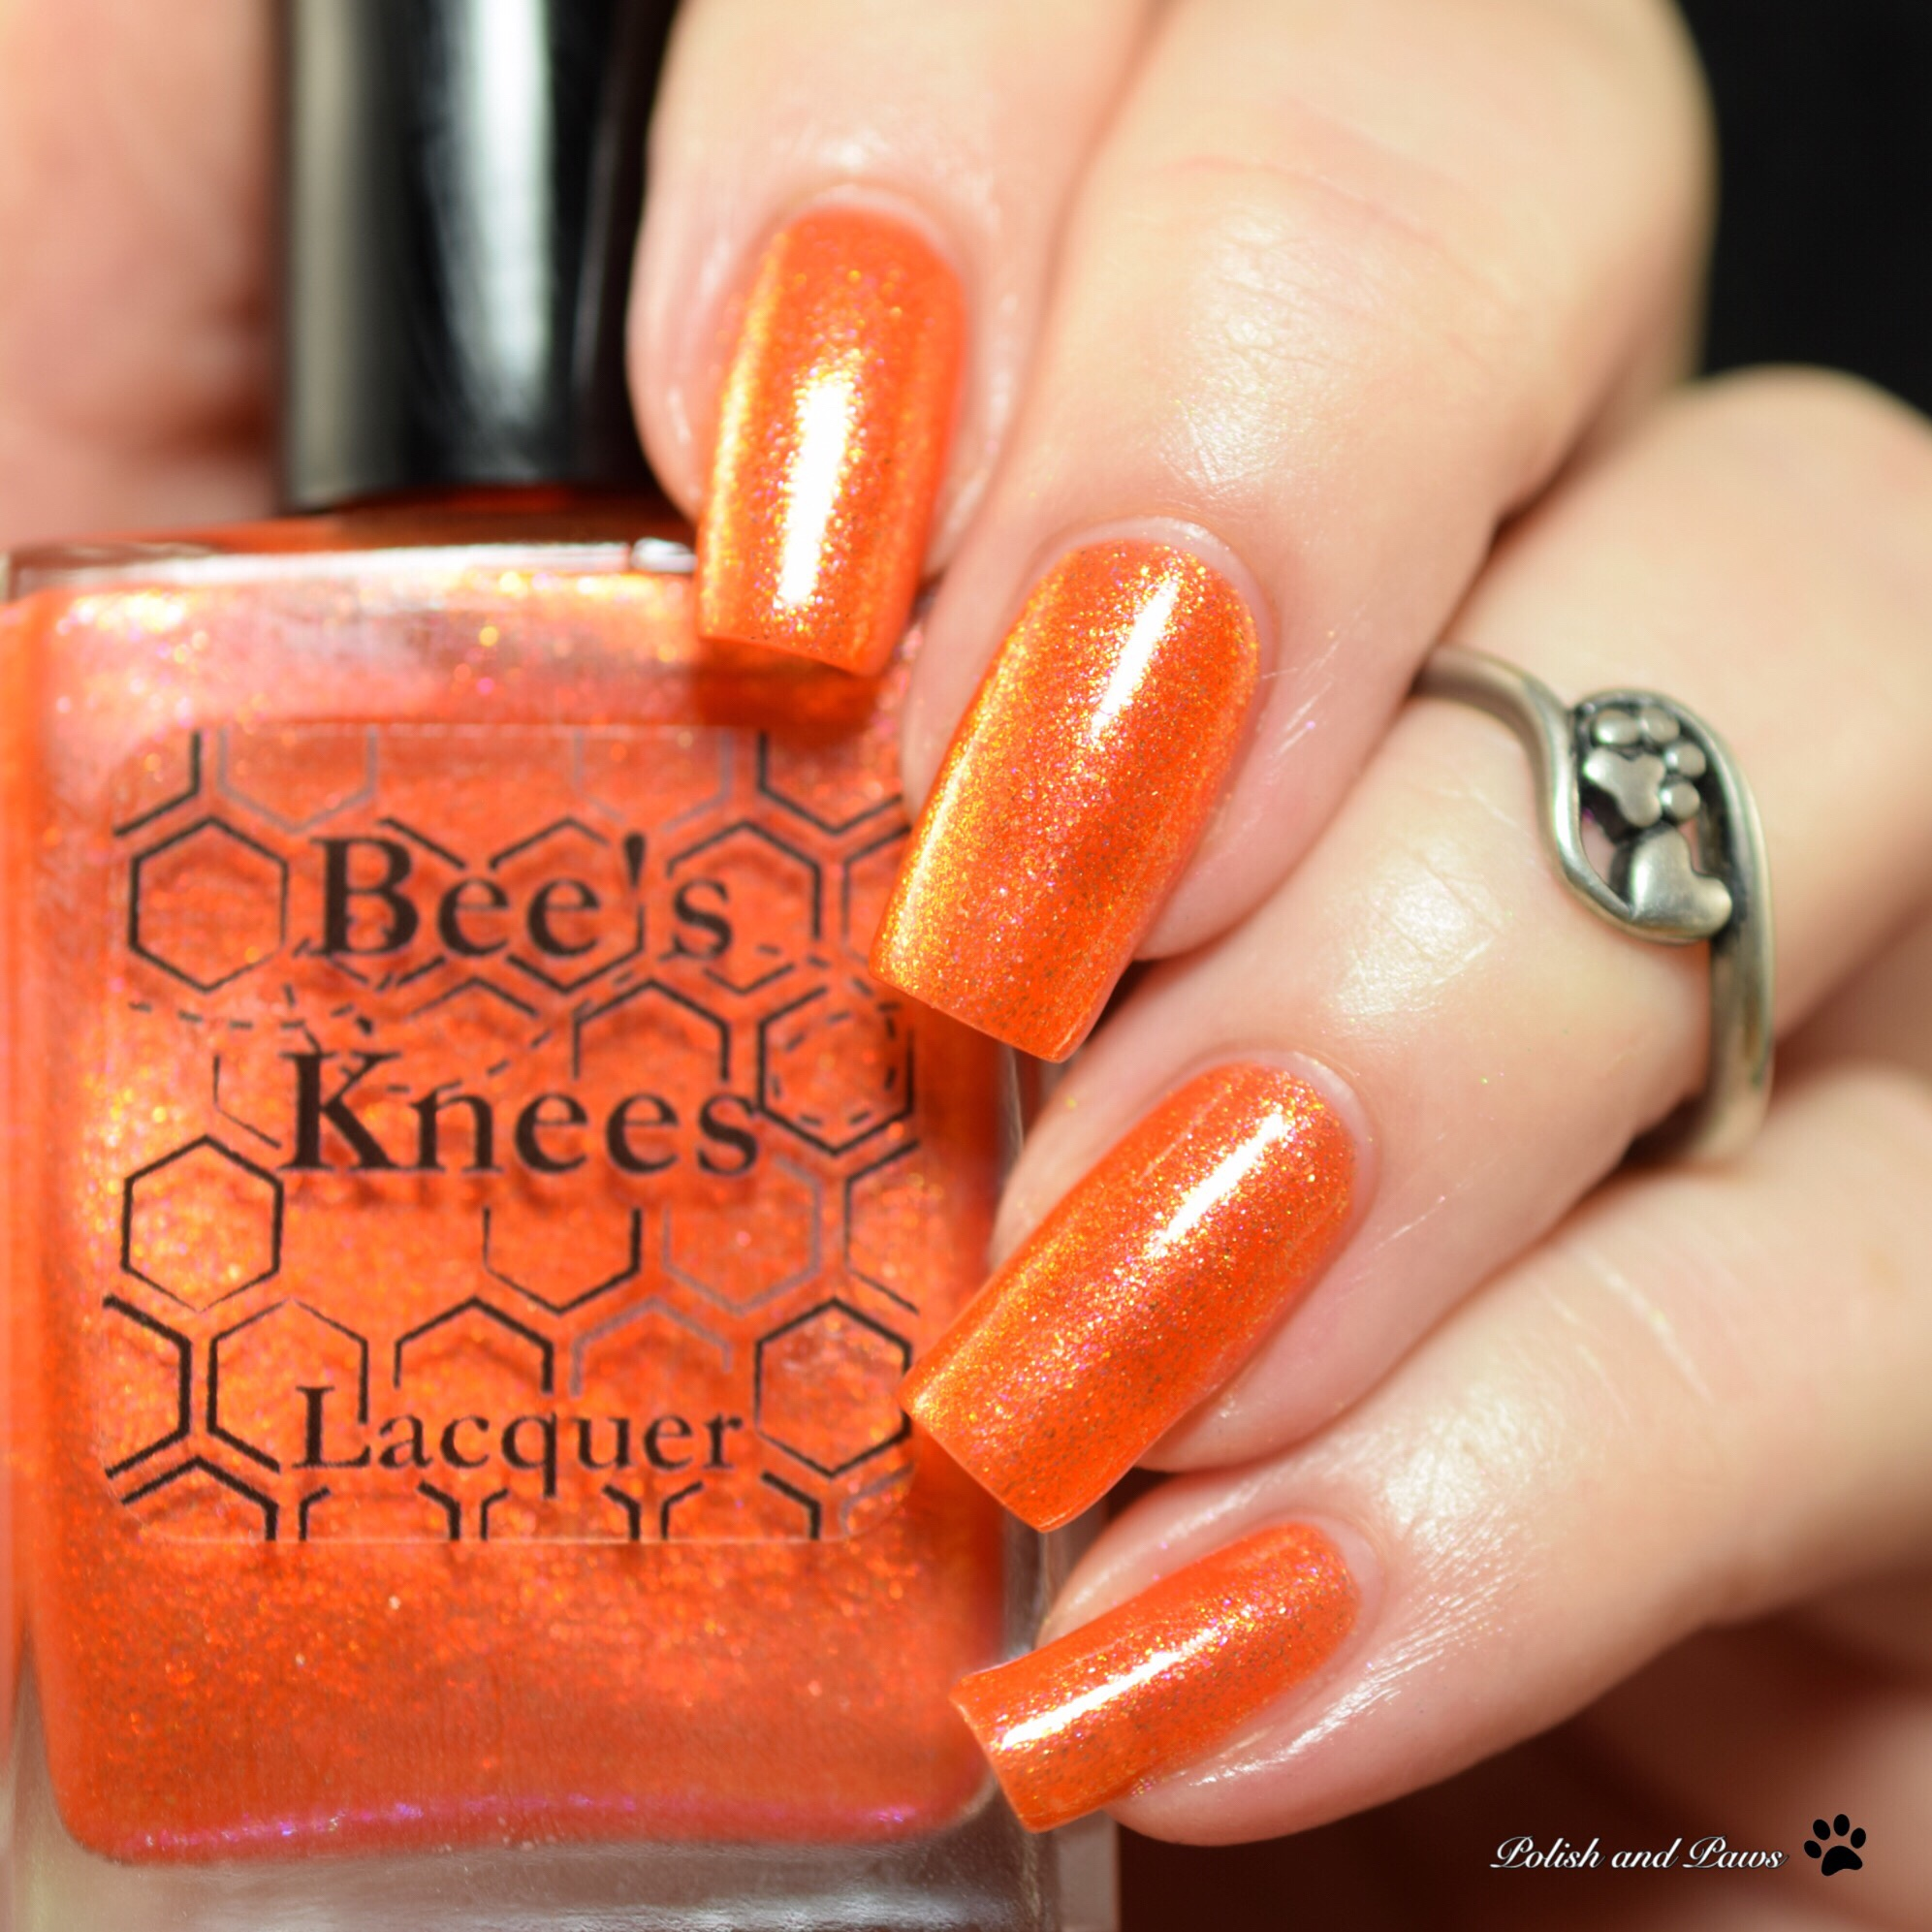 Bee's Knees Lacquer Dark Princess